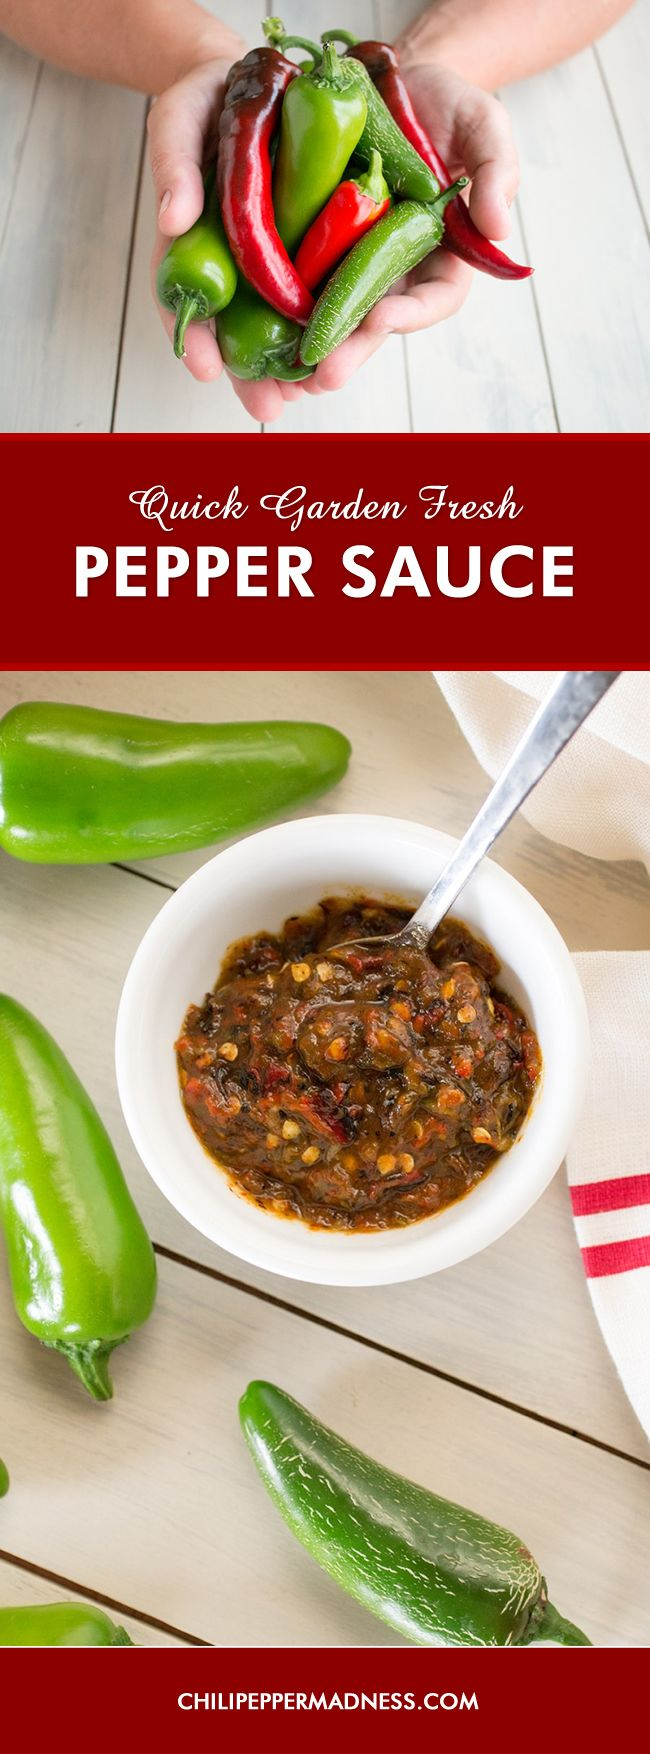 Quick Garden Fresh Pepper Sauce - This is easy to make. Fresh chili peppers picked right from the garden, roasted, then processed with garlic, honey and oil. Perfect for smothering chicken or salmon dishes.